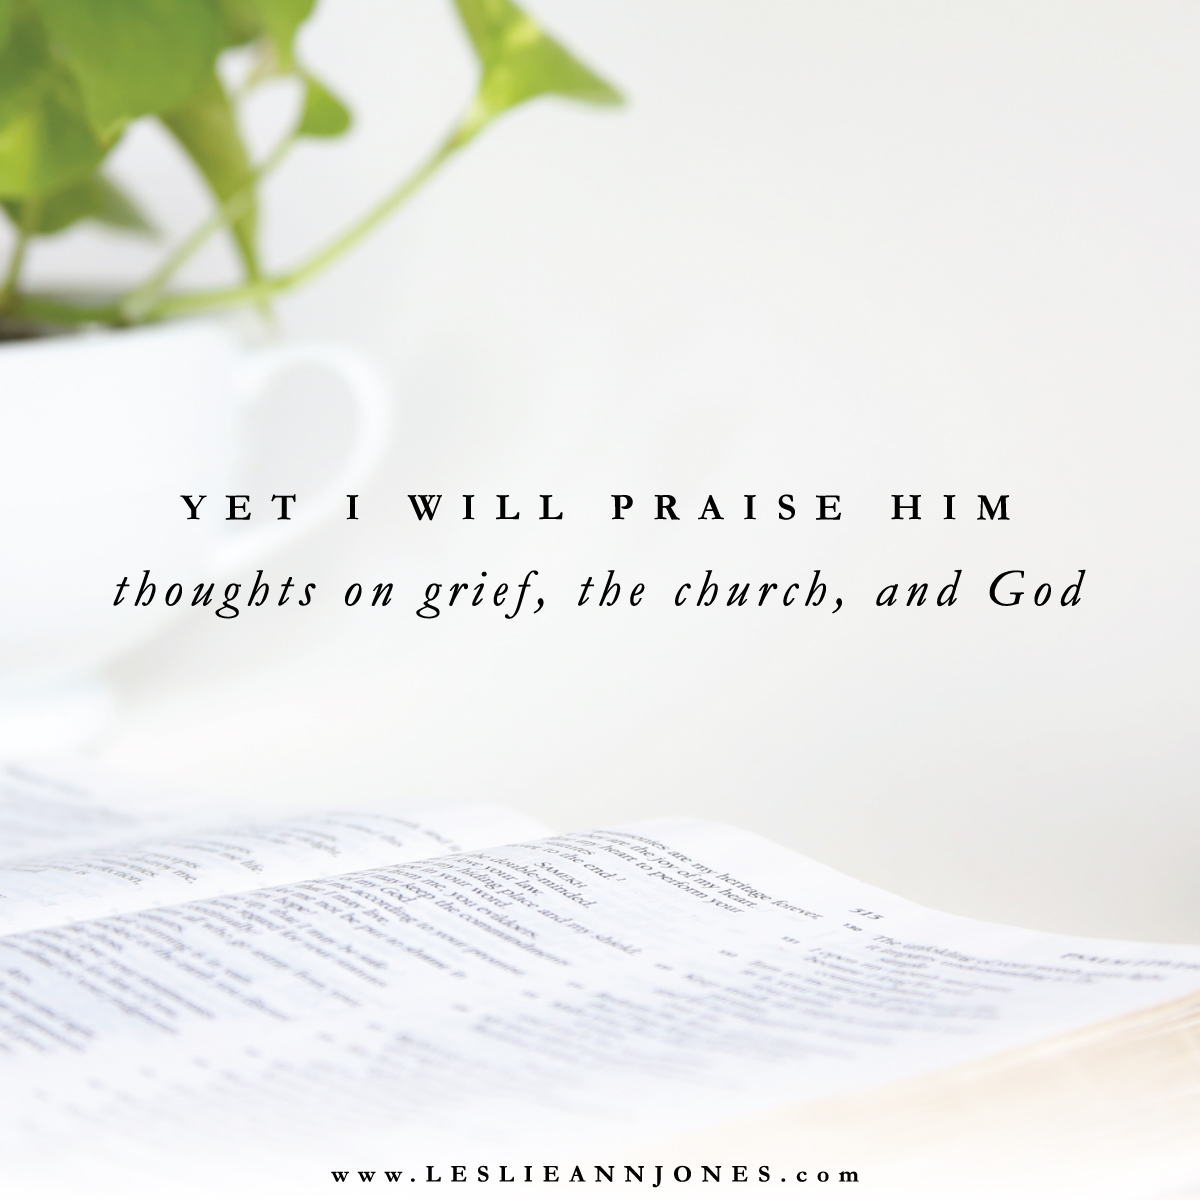 Yet I Will Praise Him. Thoughts on grief, the church, and God. via leslieannjones.com